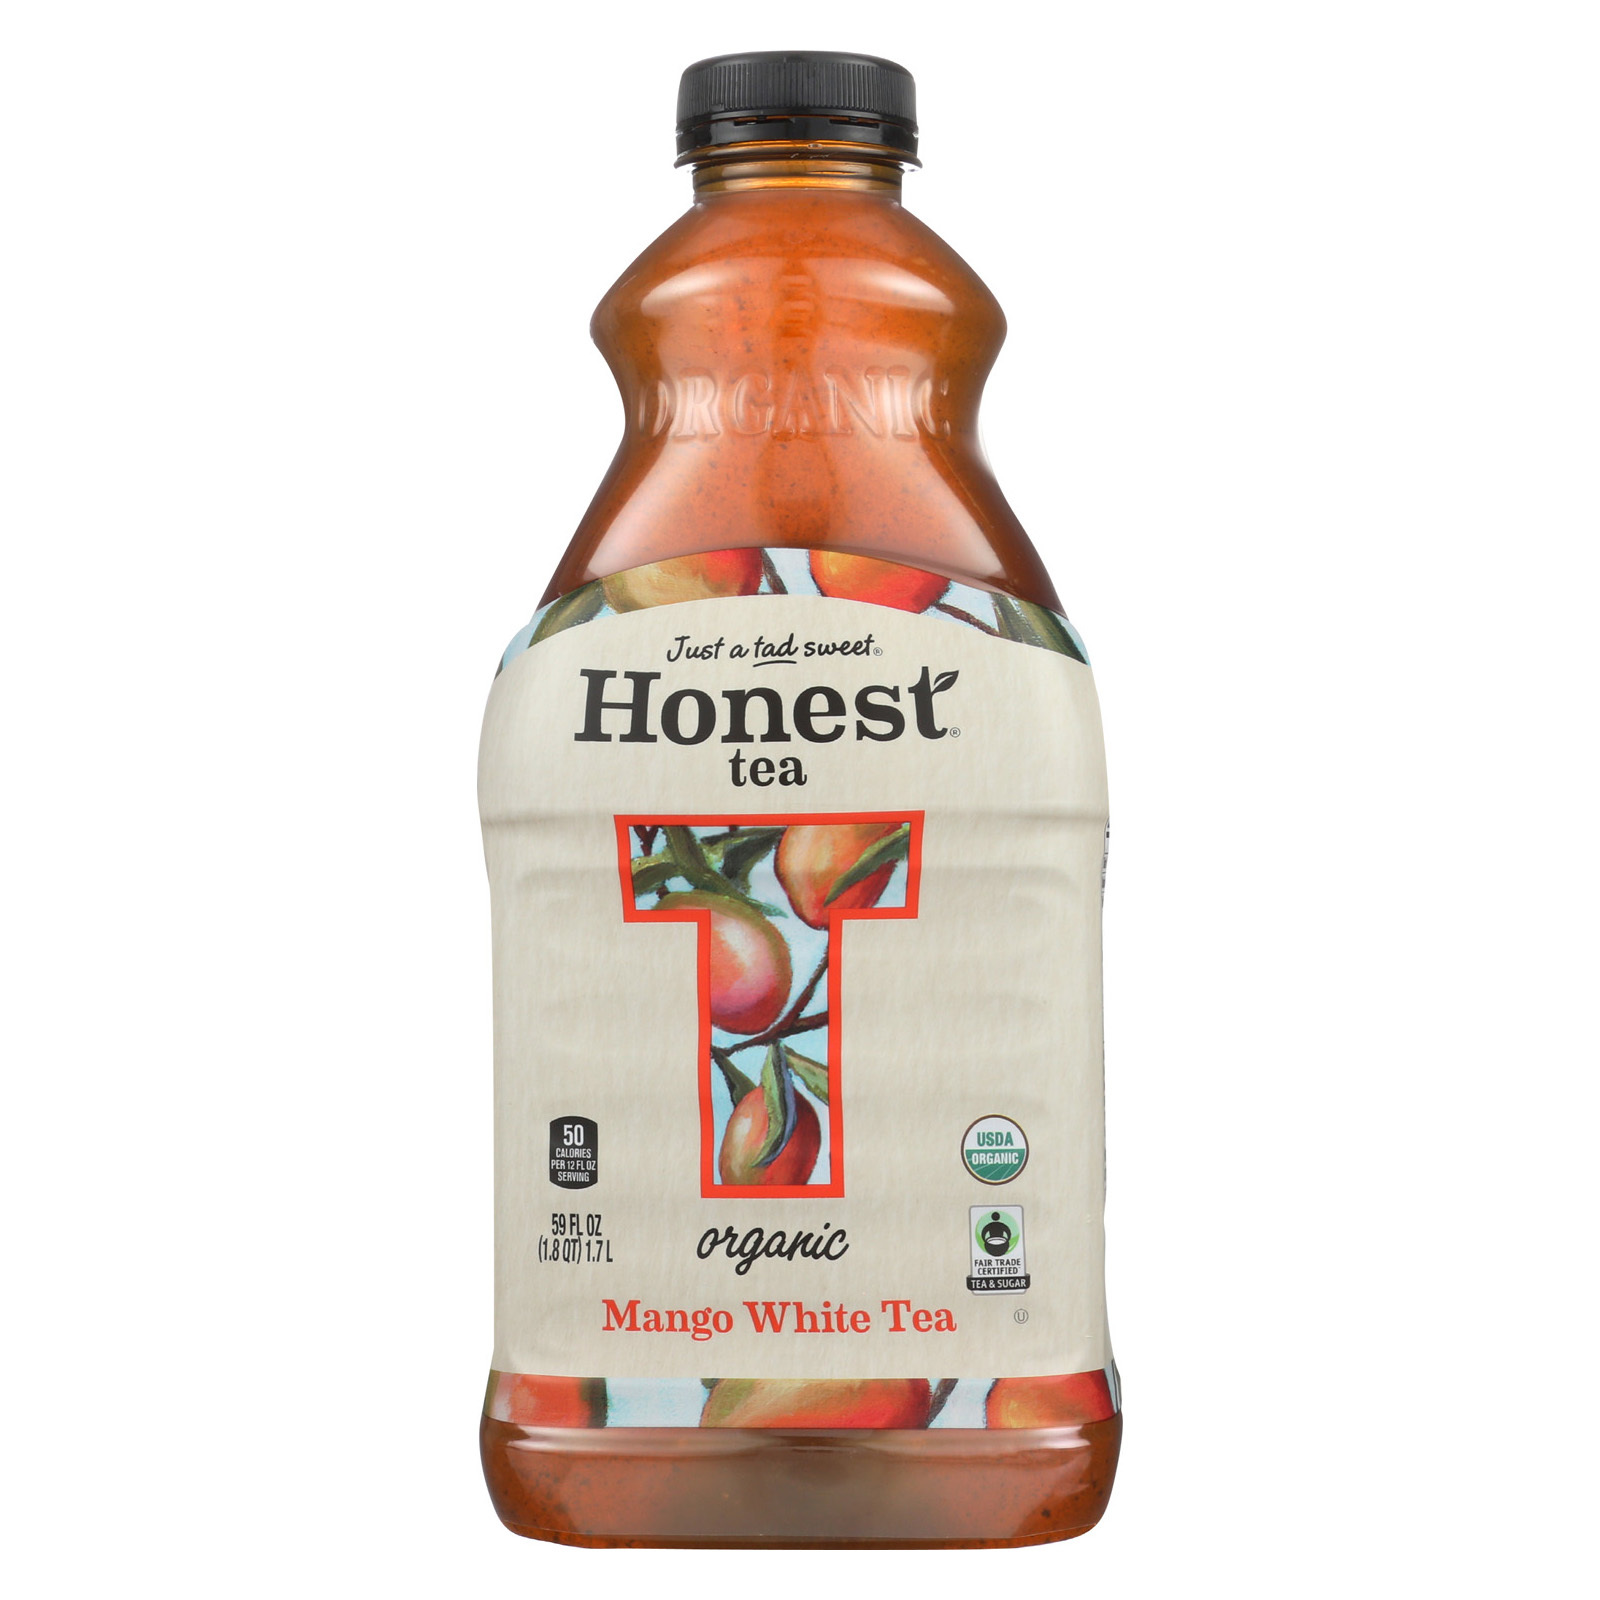 Honest Tea Tea - Organic - Mango Acai White - Case of 8 - 59 fl oz